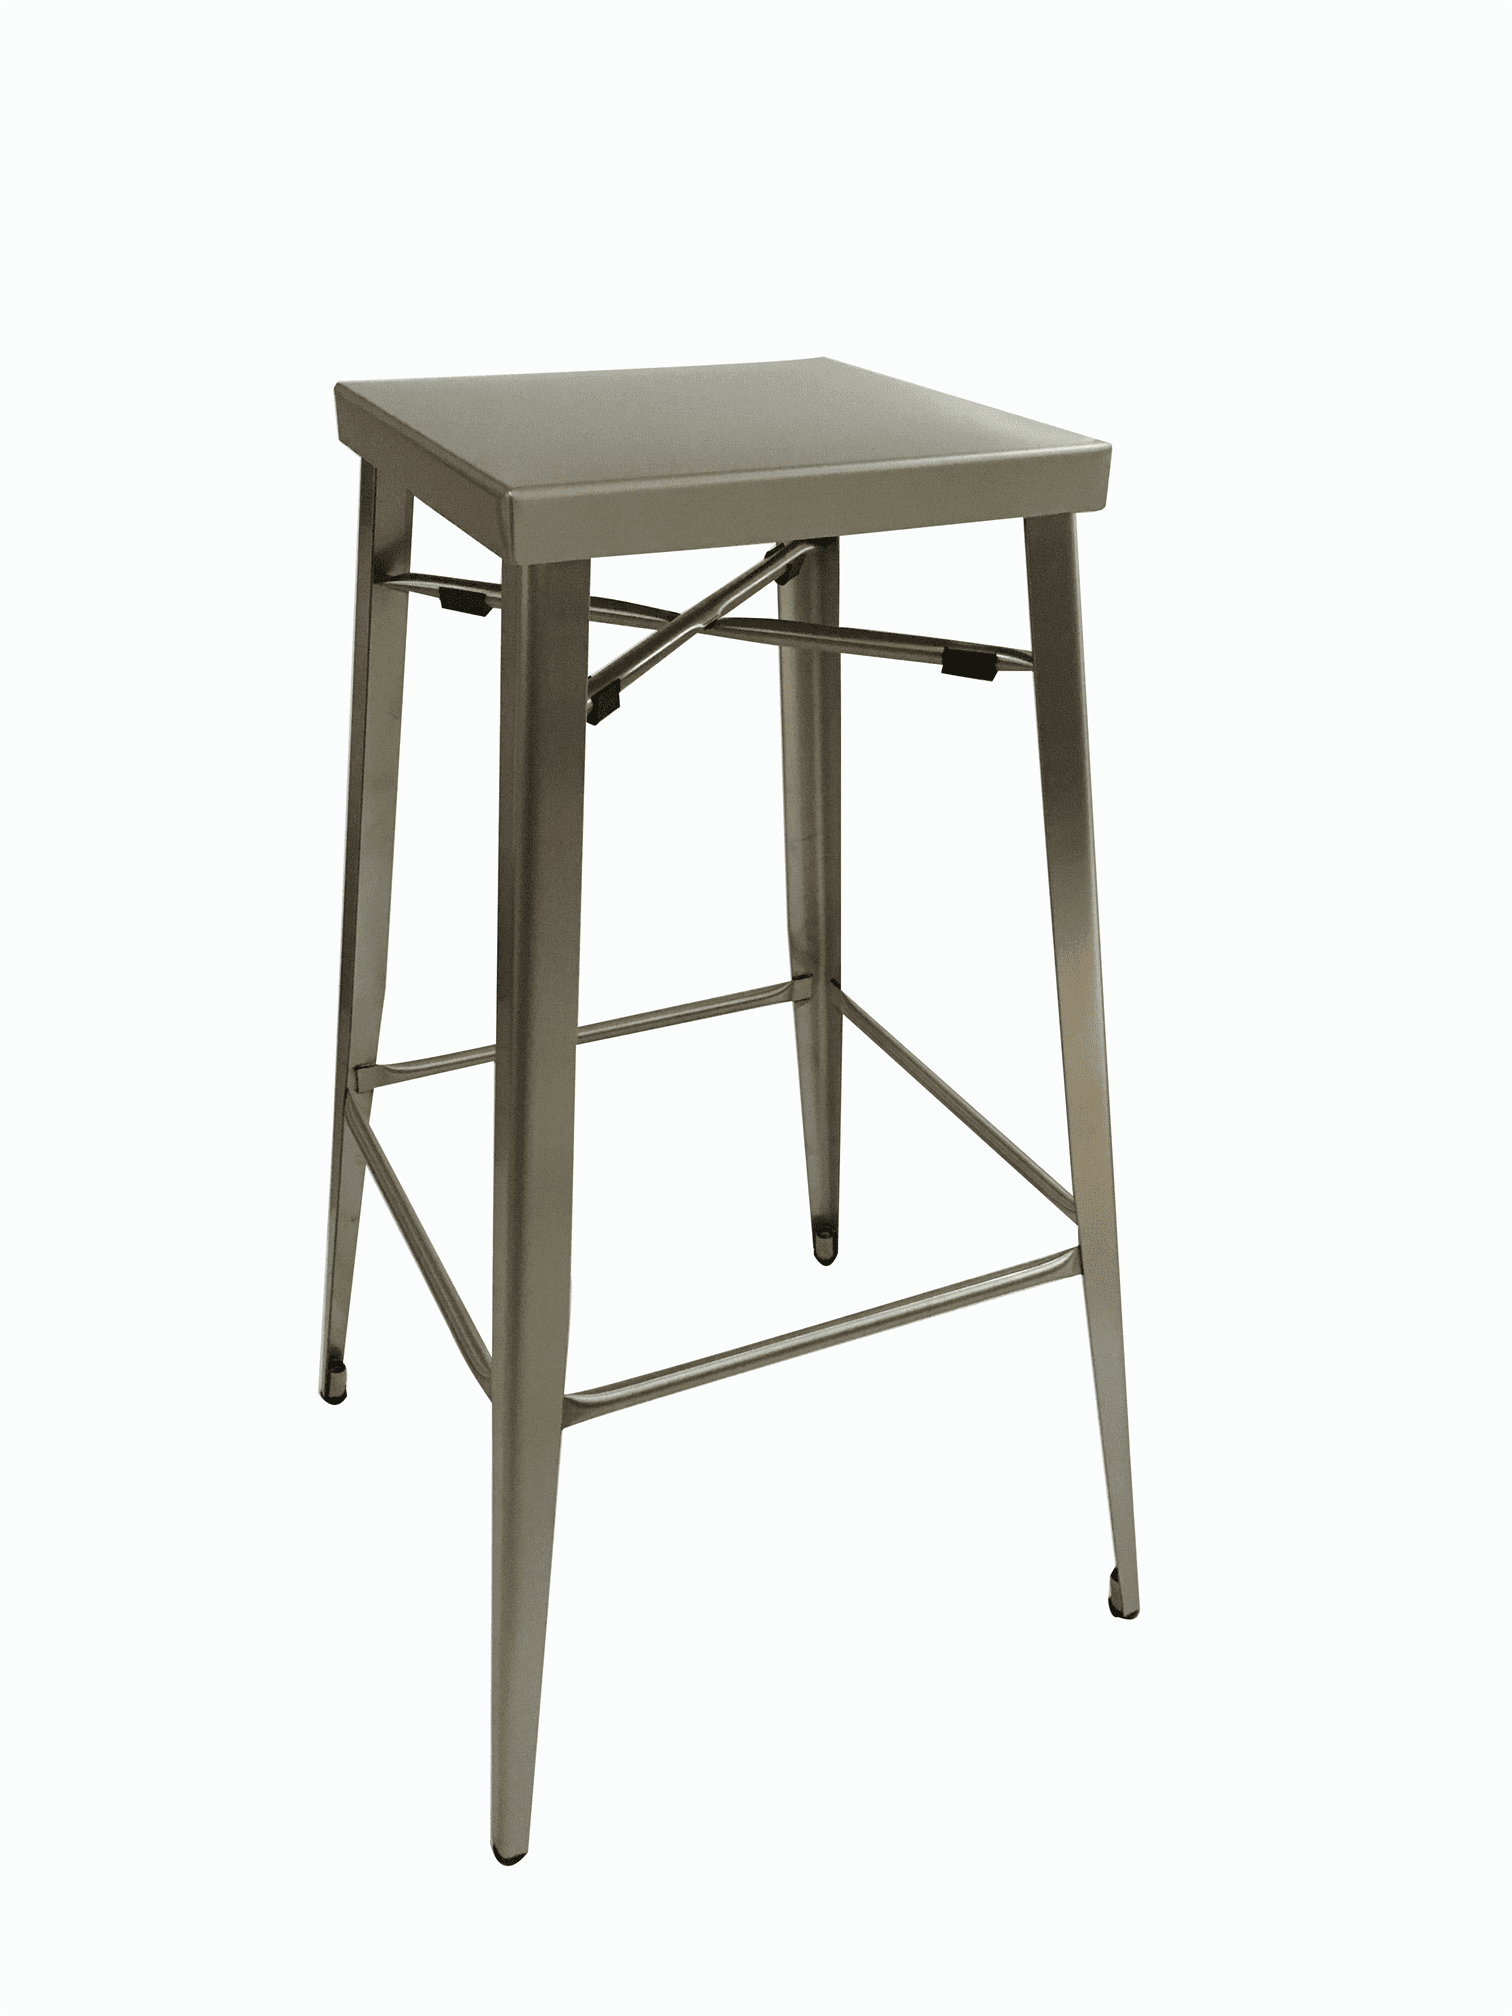 Salsa high stool